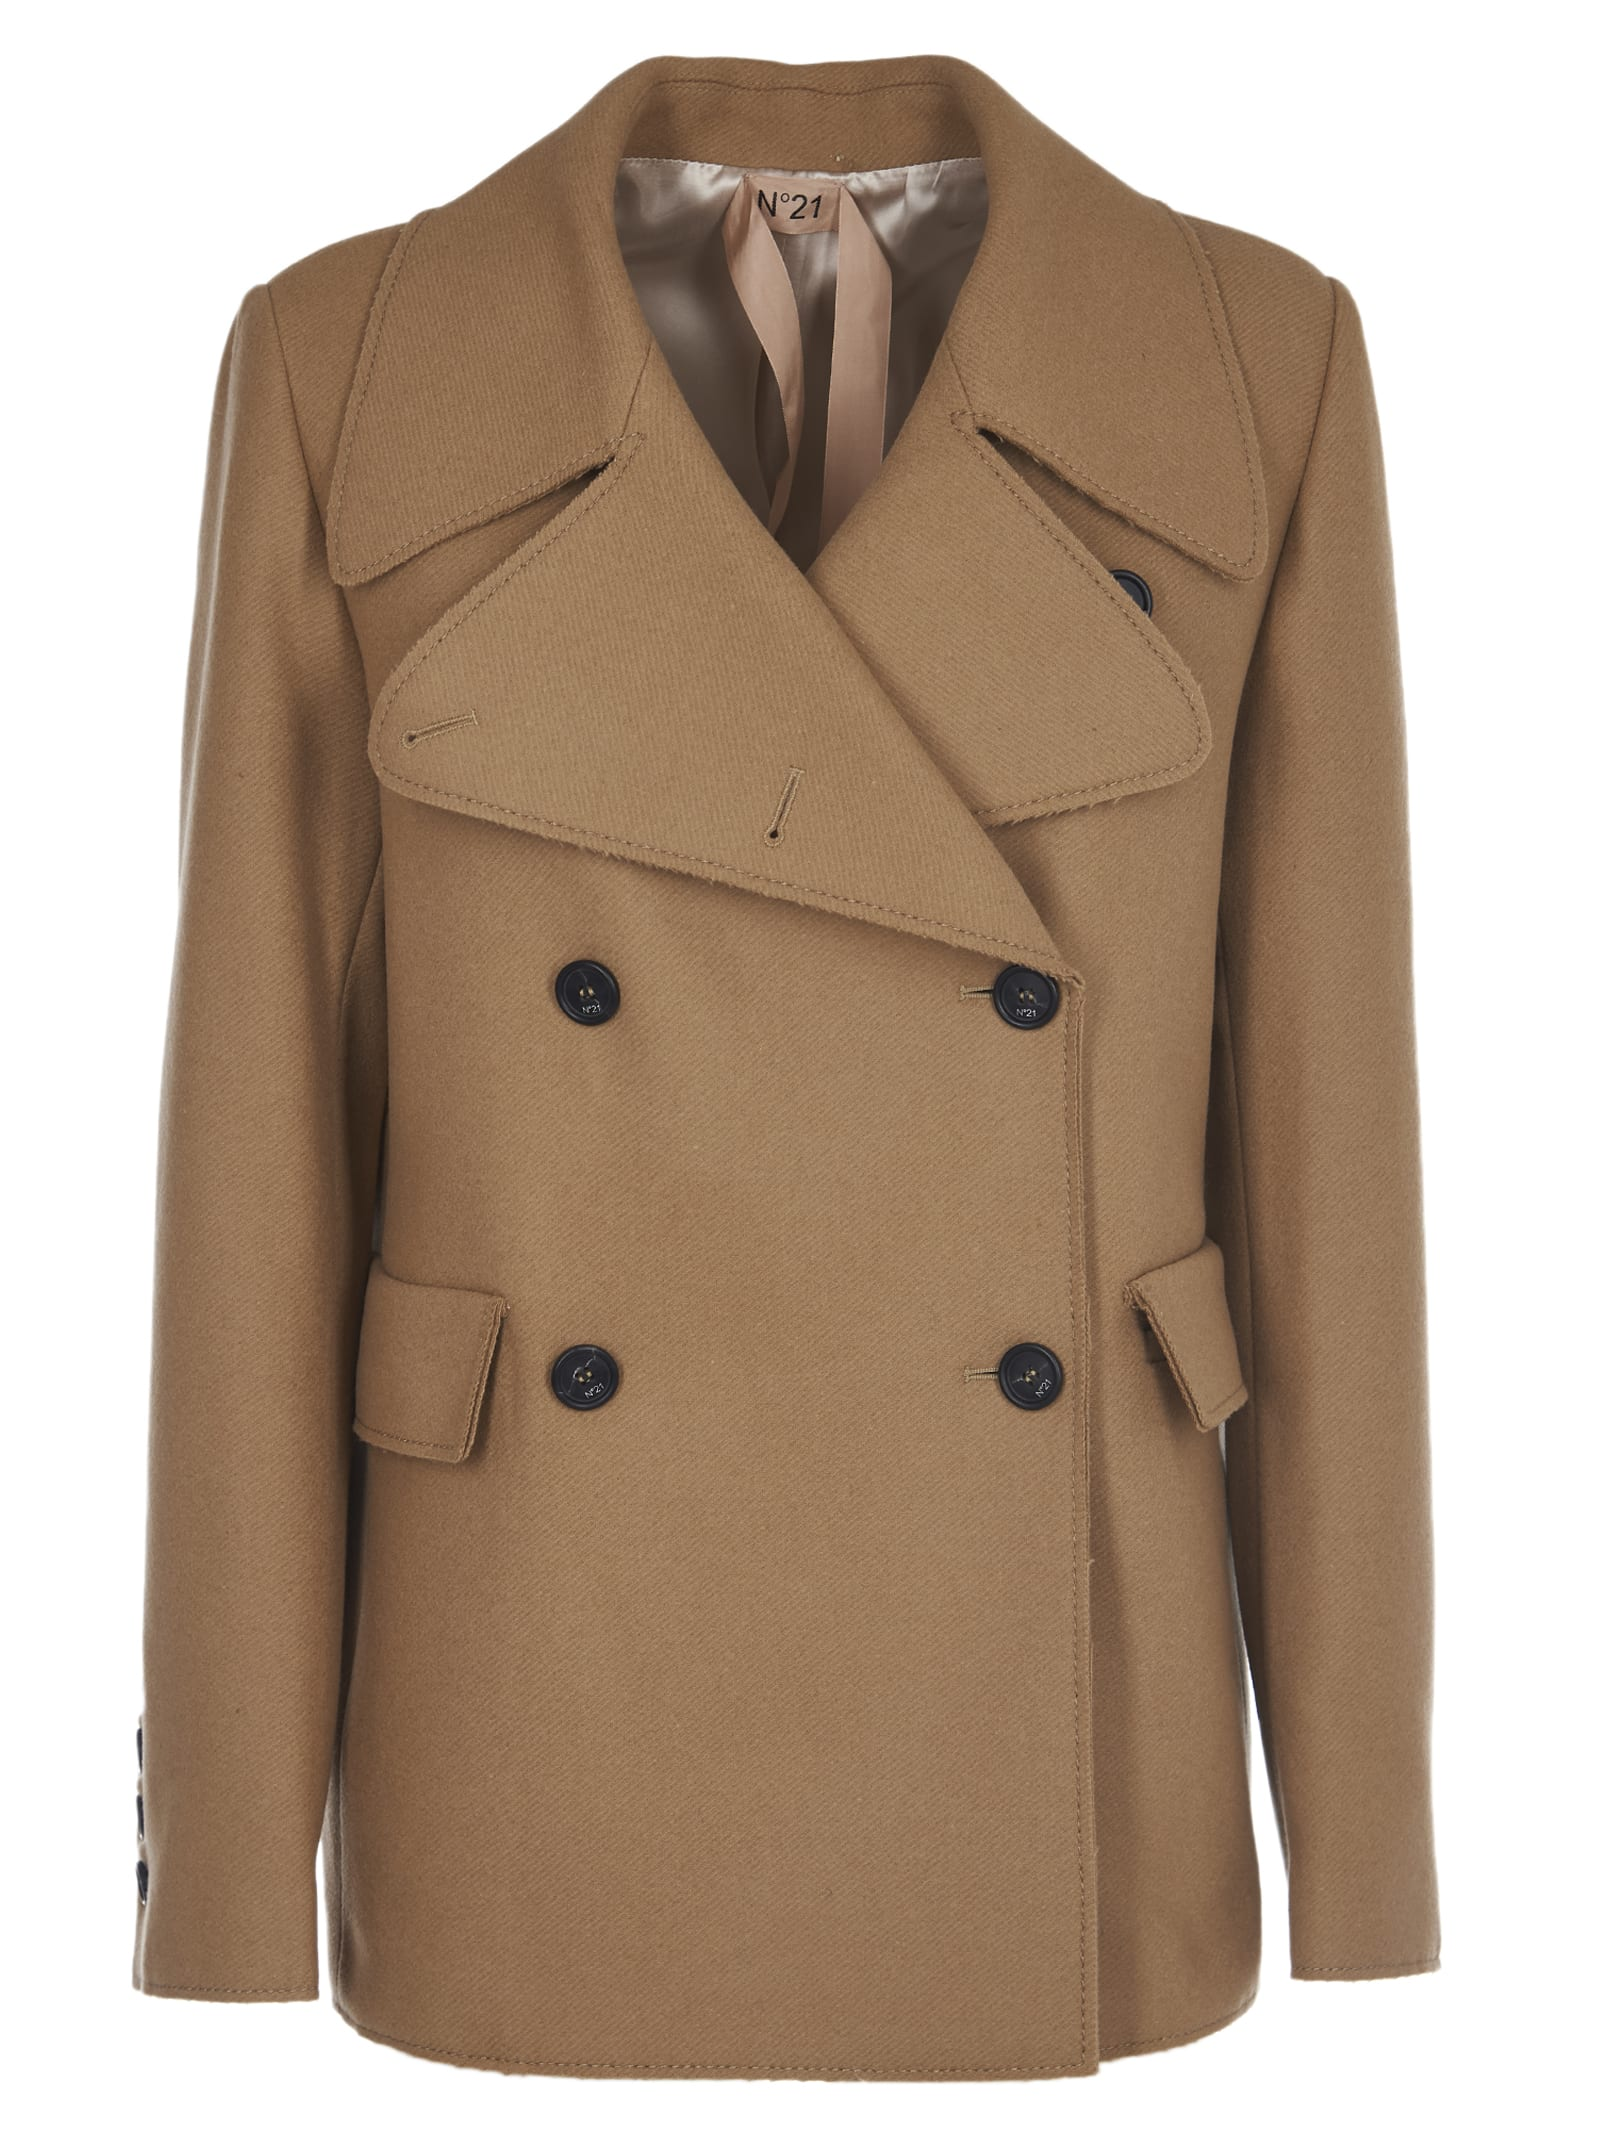 N.21 Camel Short Double-breasted Coat